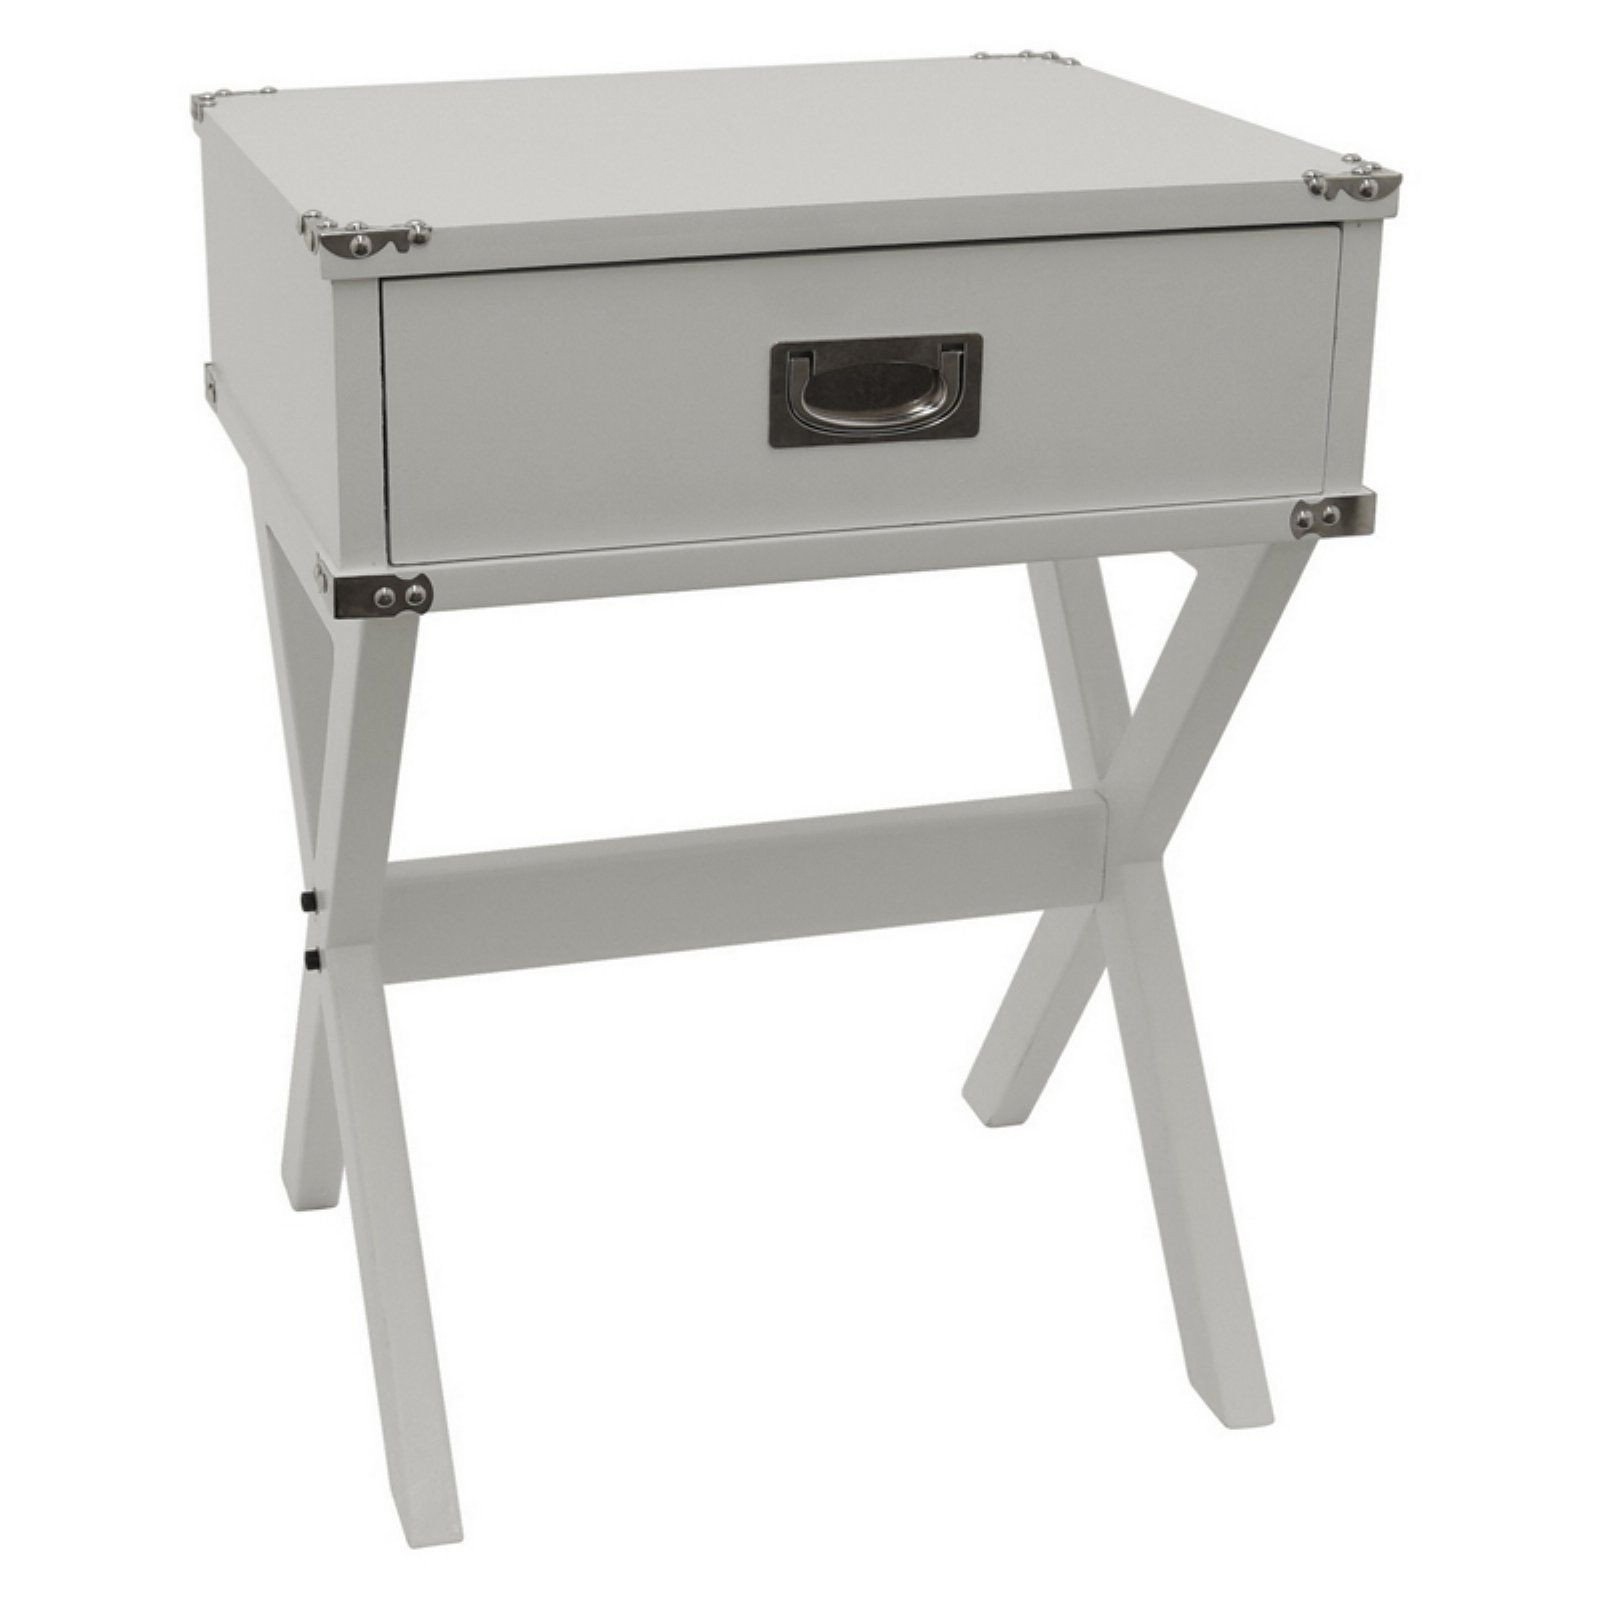 White Bedroom End Tables Fresh Three Hands 1 Drawer Side Table with Crossed Legs Gray